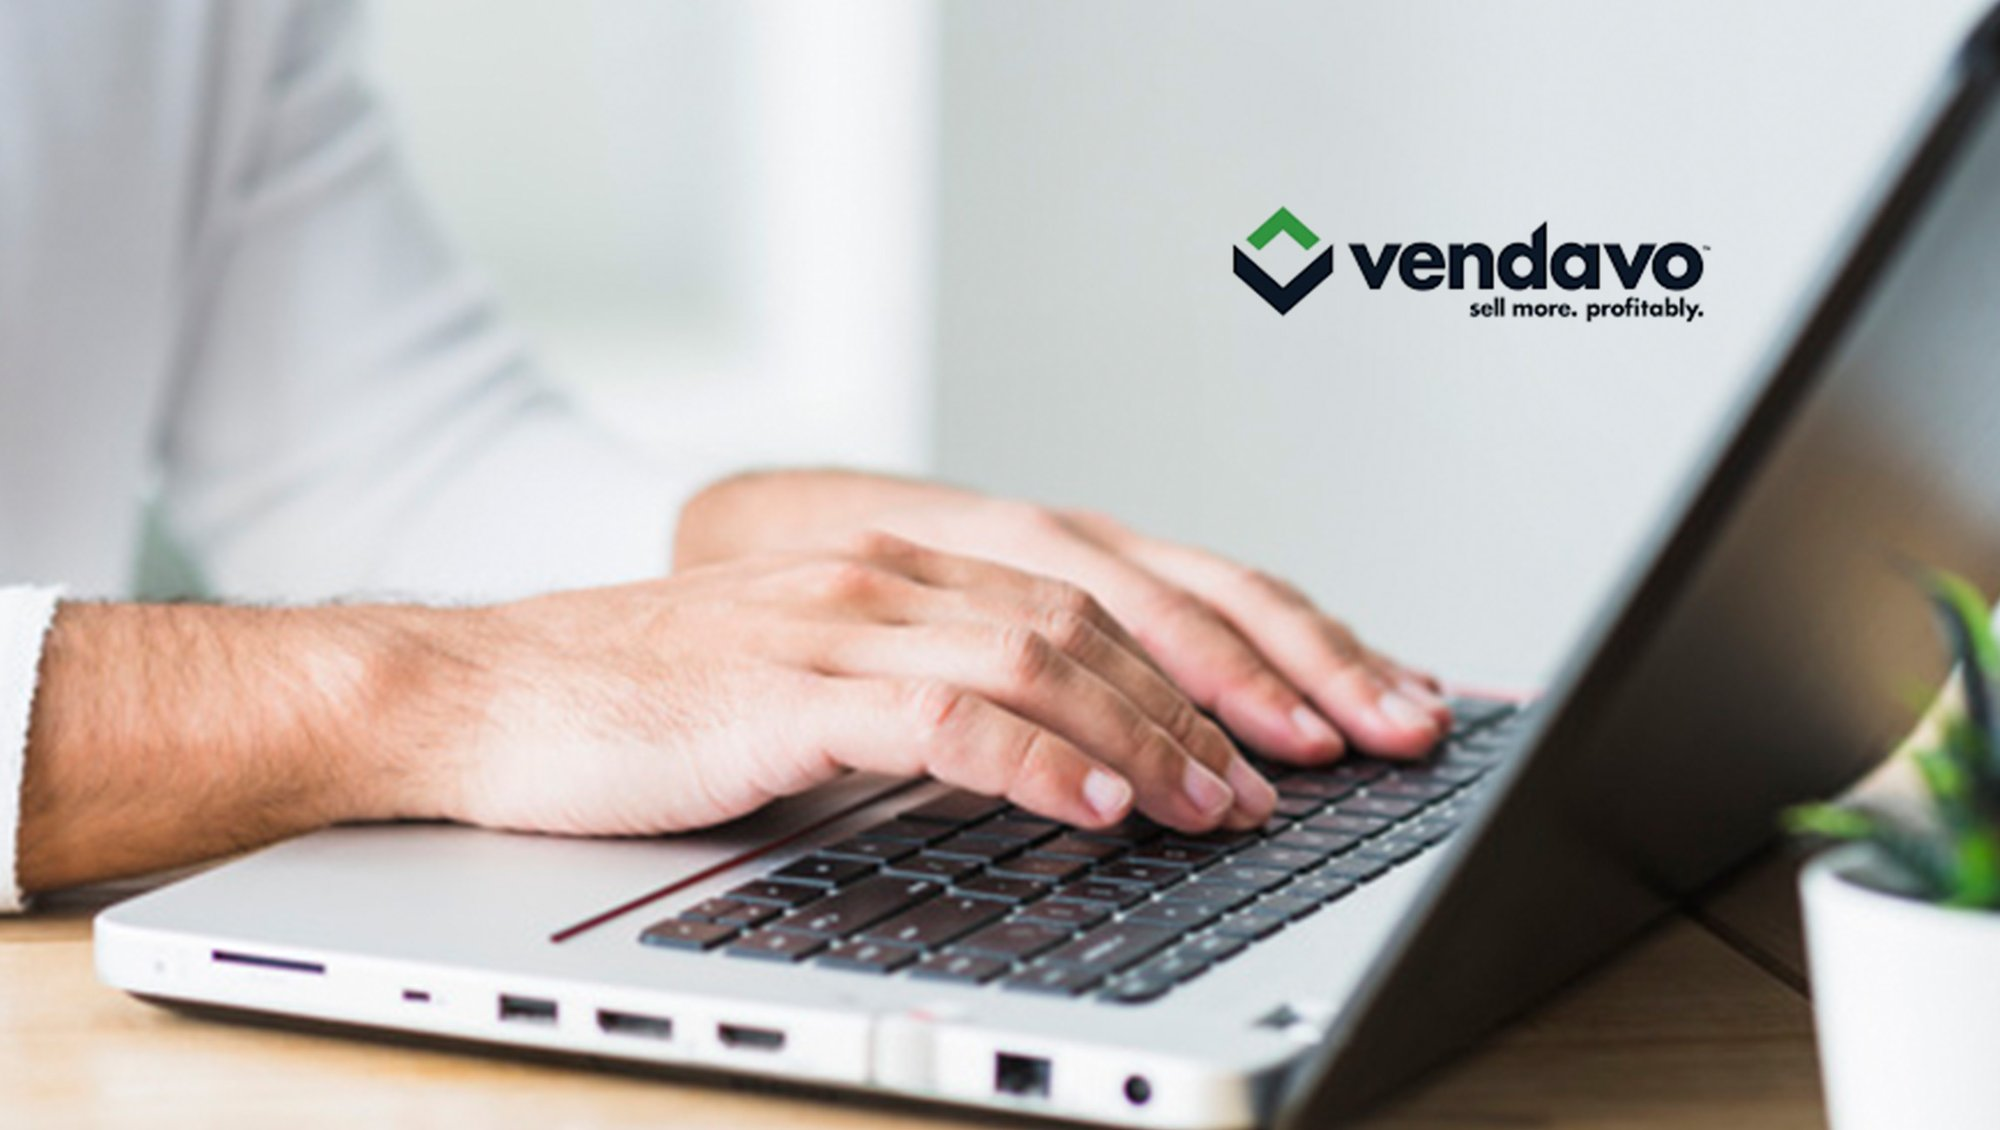 Vendavo Introduces New Artificial Intelligence Deal Price Guidance Solution